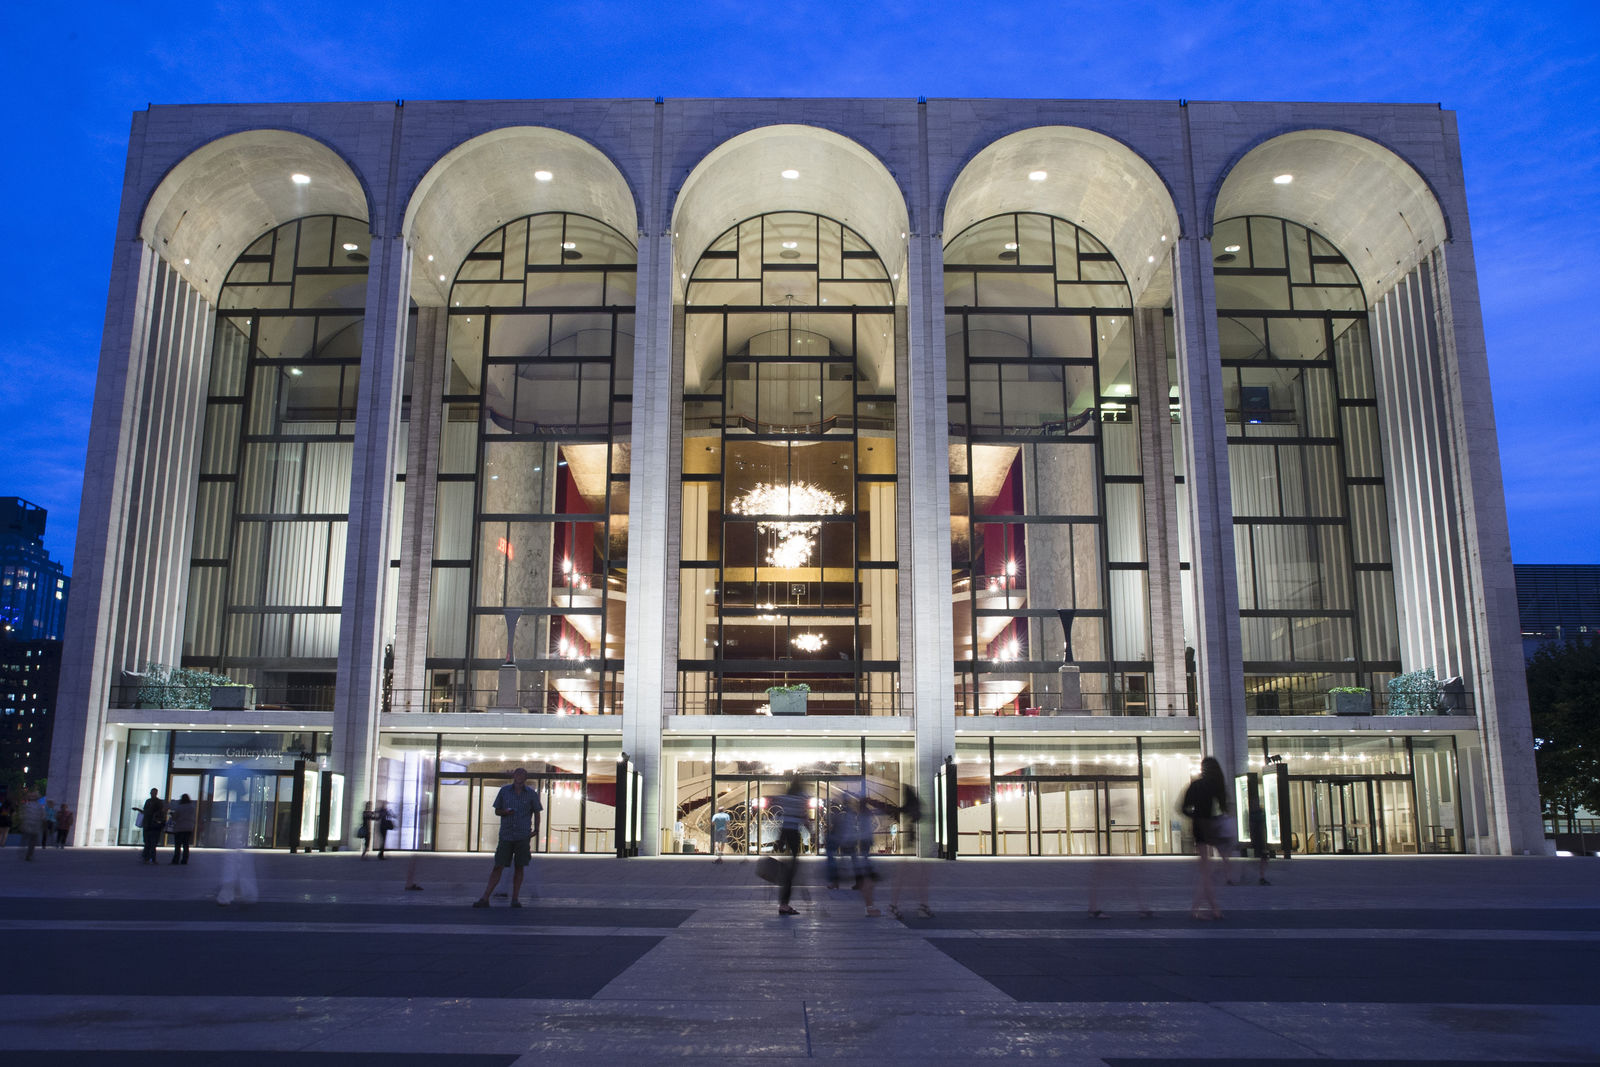 FILE - In this Aug. 1, 2014, file photo, pedestrians make their way in front of the Metropolitan Opera house at New York's Lincoln Center. (AP Photo/John Minchillo, File)